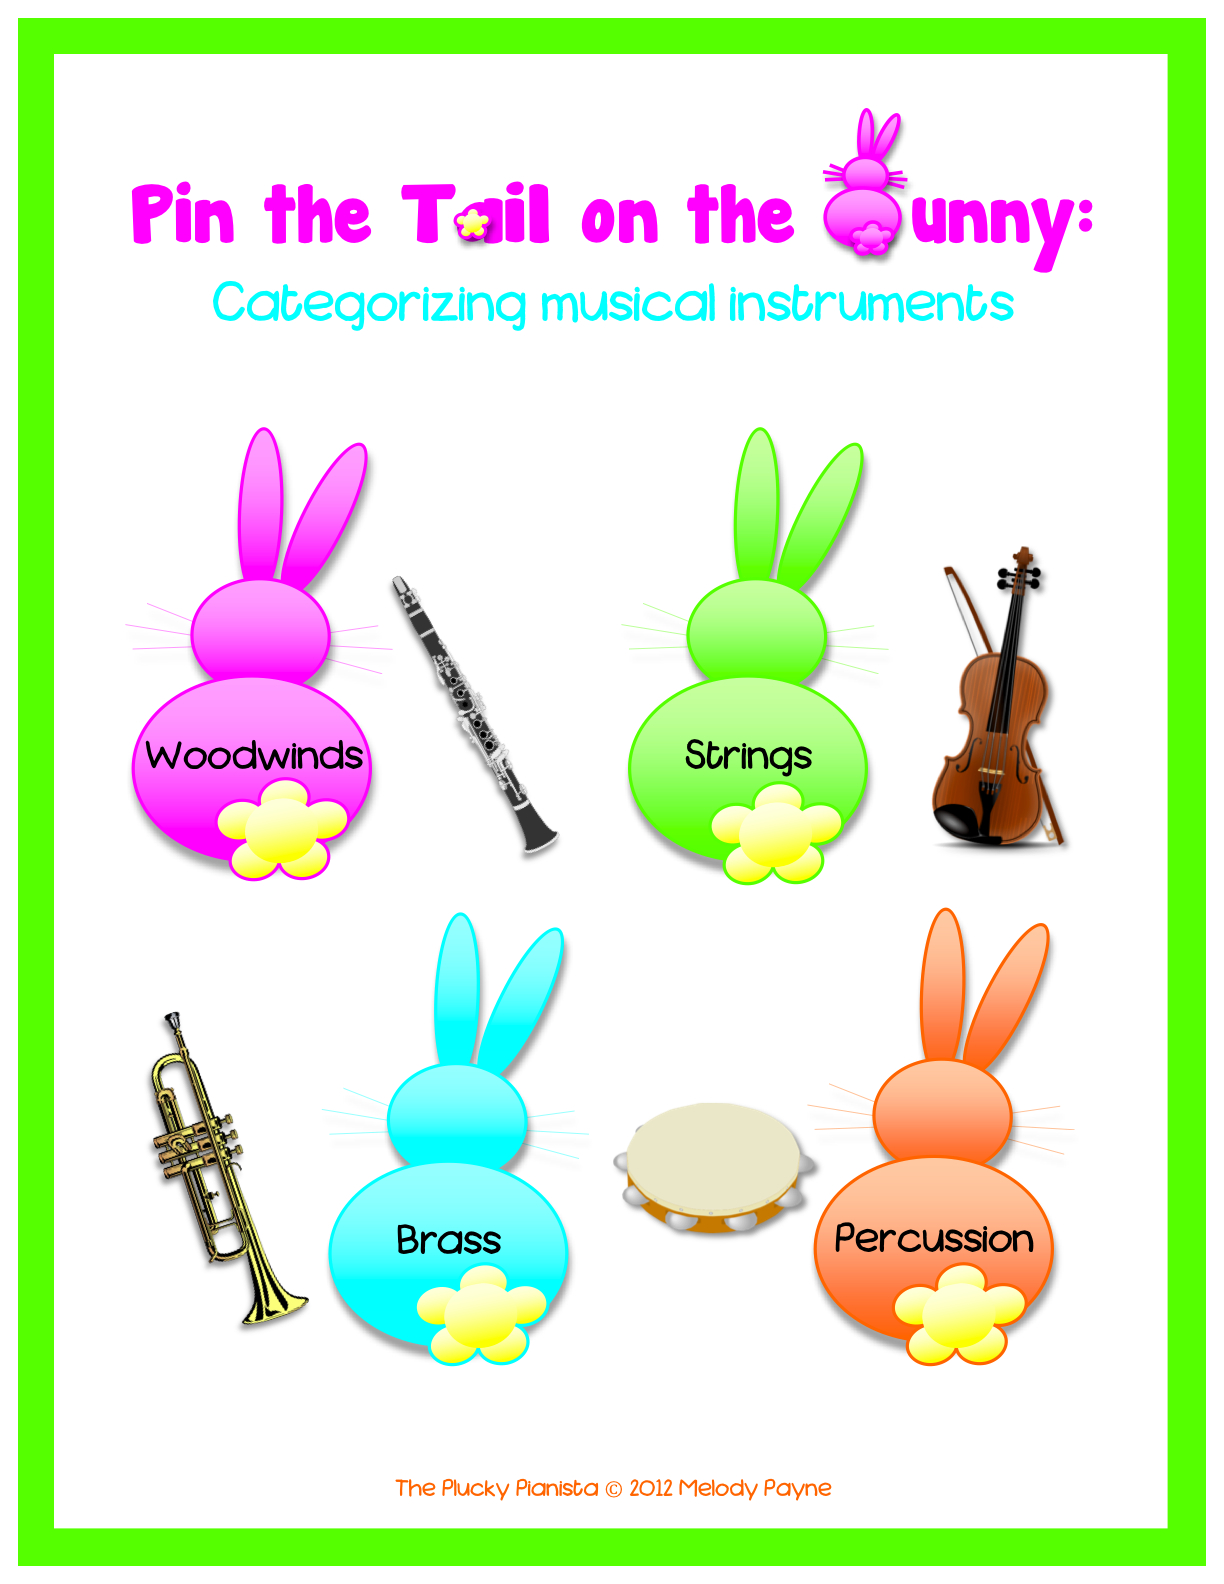 Stupendous image intended for pin the tail on the bunny printable